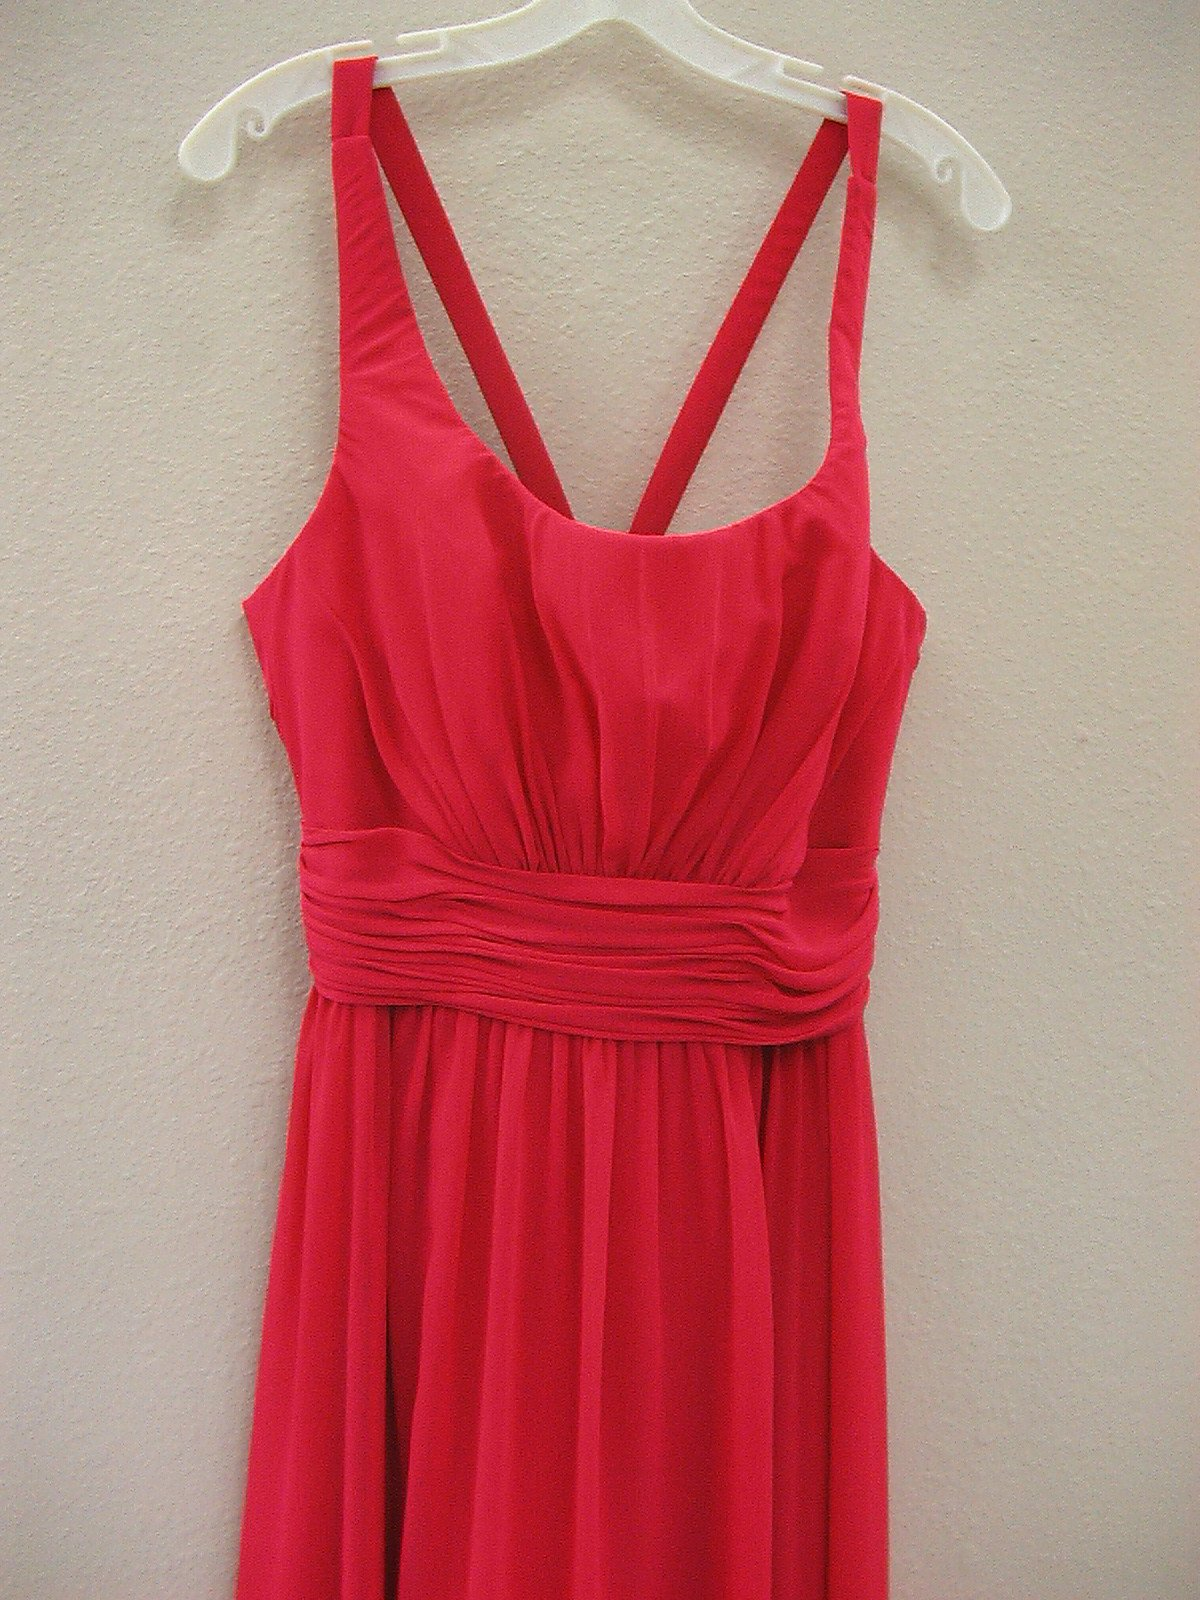 Allure 1257 Hot Pink Size 12 In Stock Bridesmaid Dress - Tom's Bridal